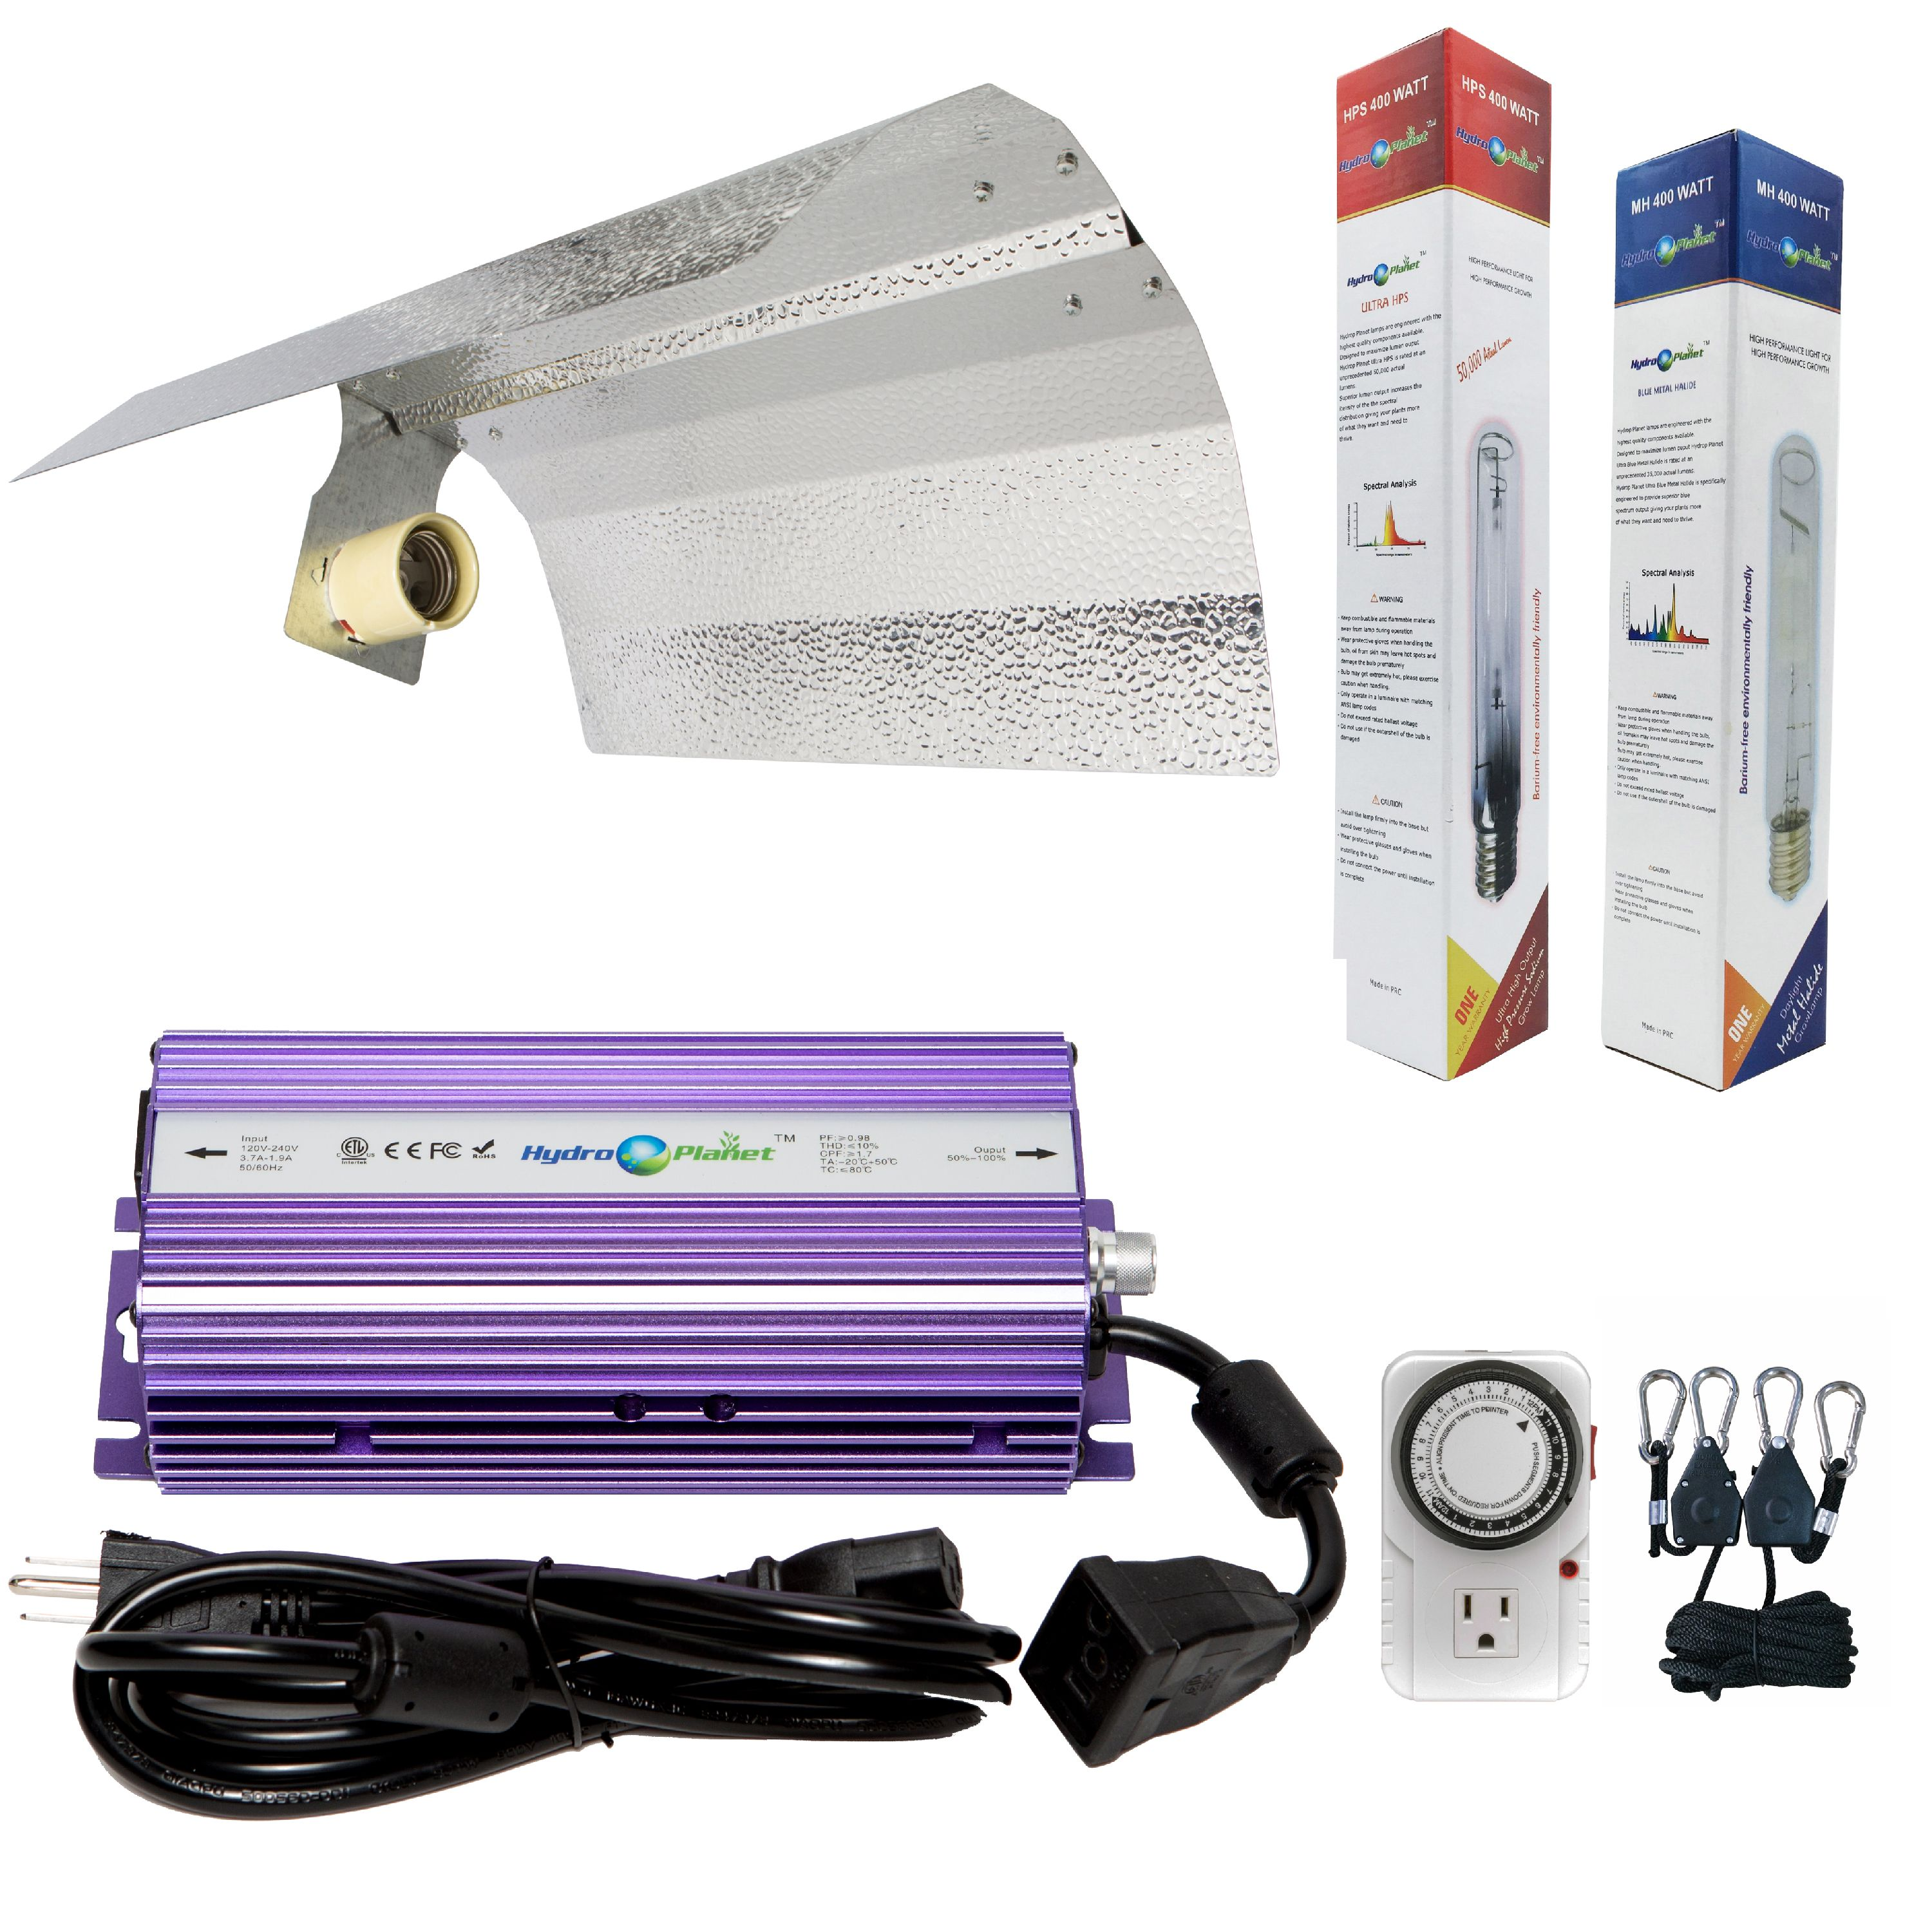 Hydroplanet™ 400w Hydroponic Grow Light Digital Dimmable Ballast HPS Mh for Plants Gull Wing Reflector Hood Set